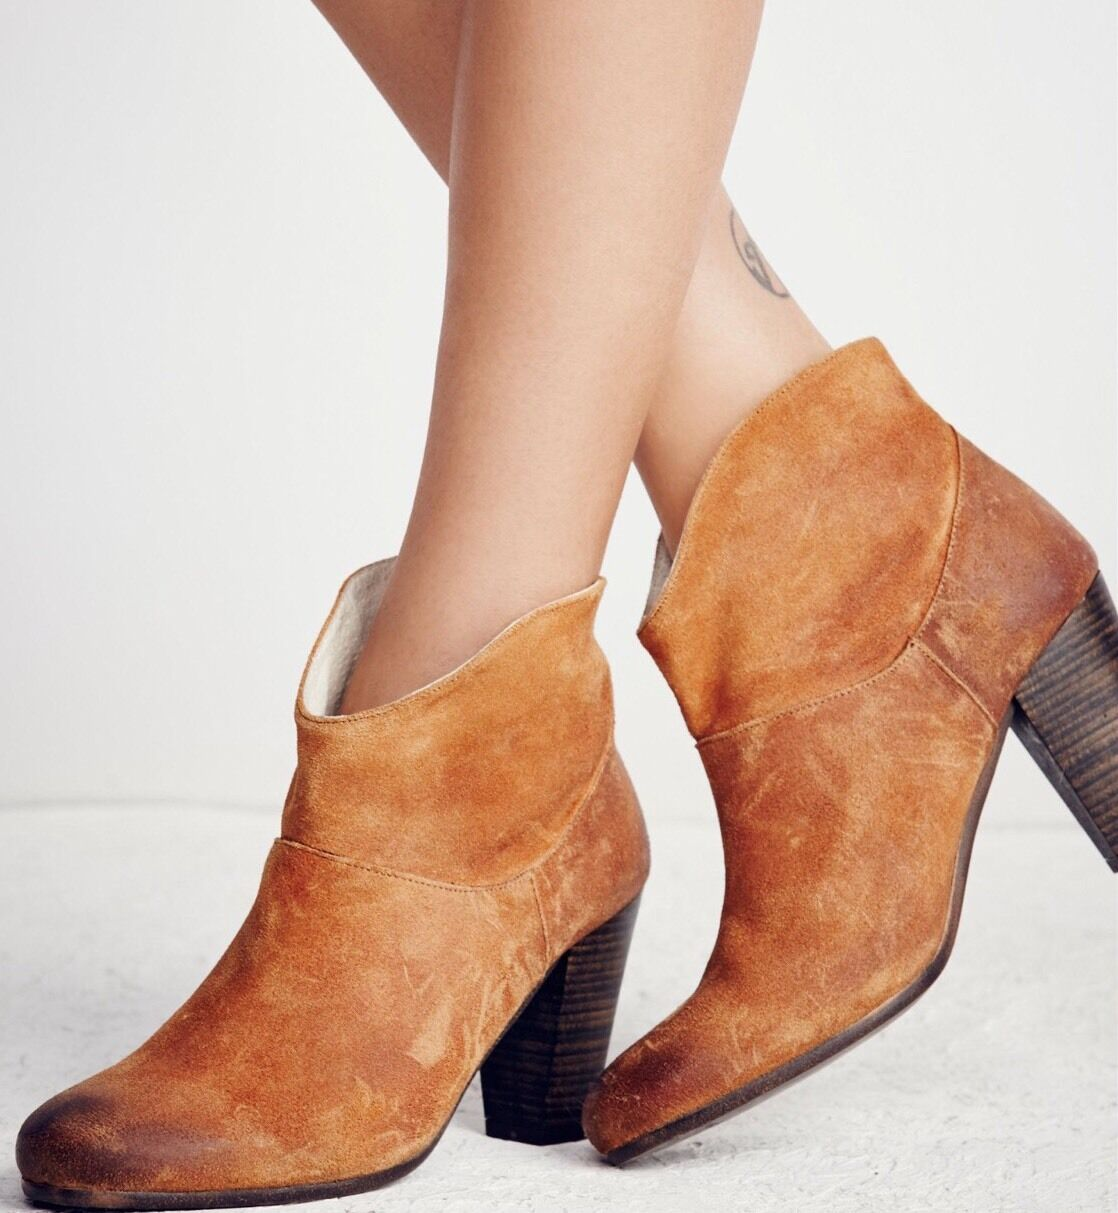 NEW Jeffrey Campbell Westmont Heel Boots Size 36 37